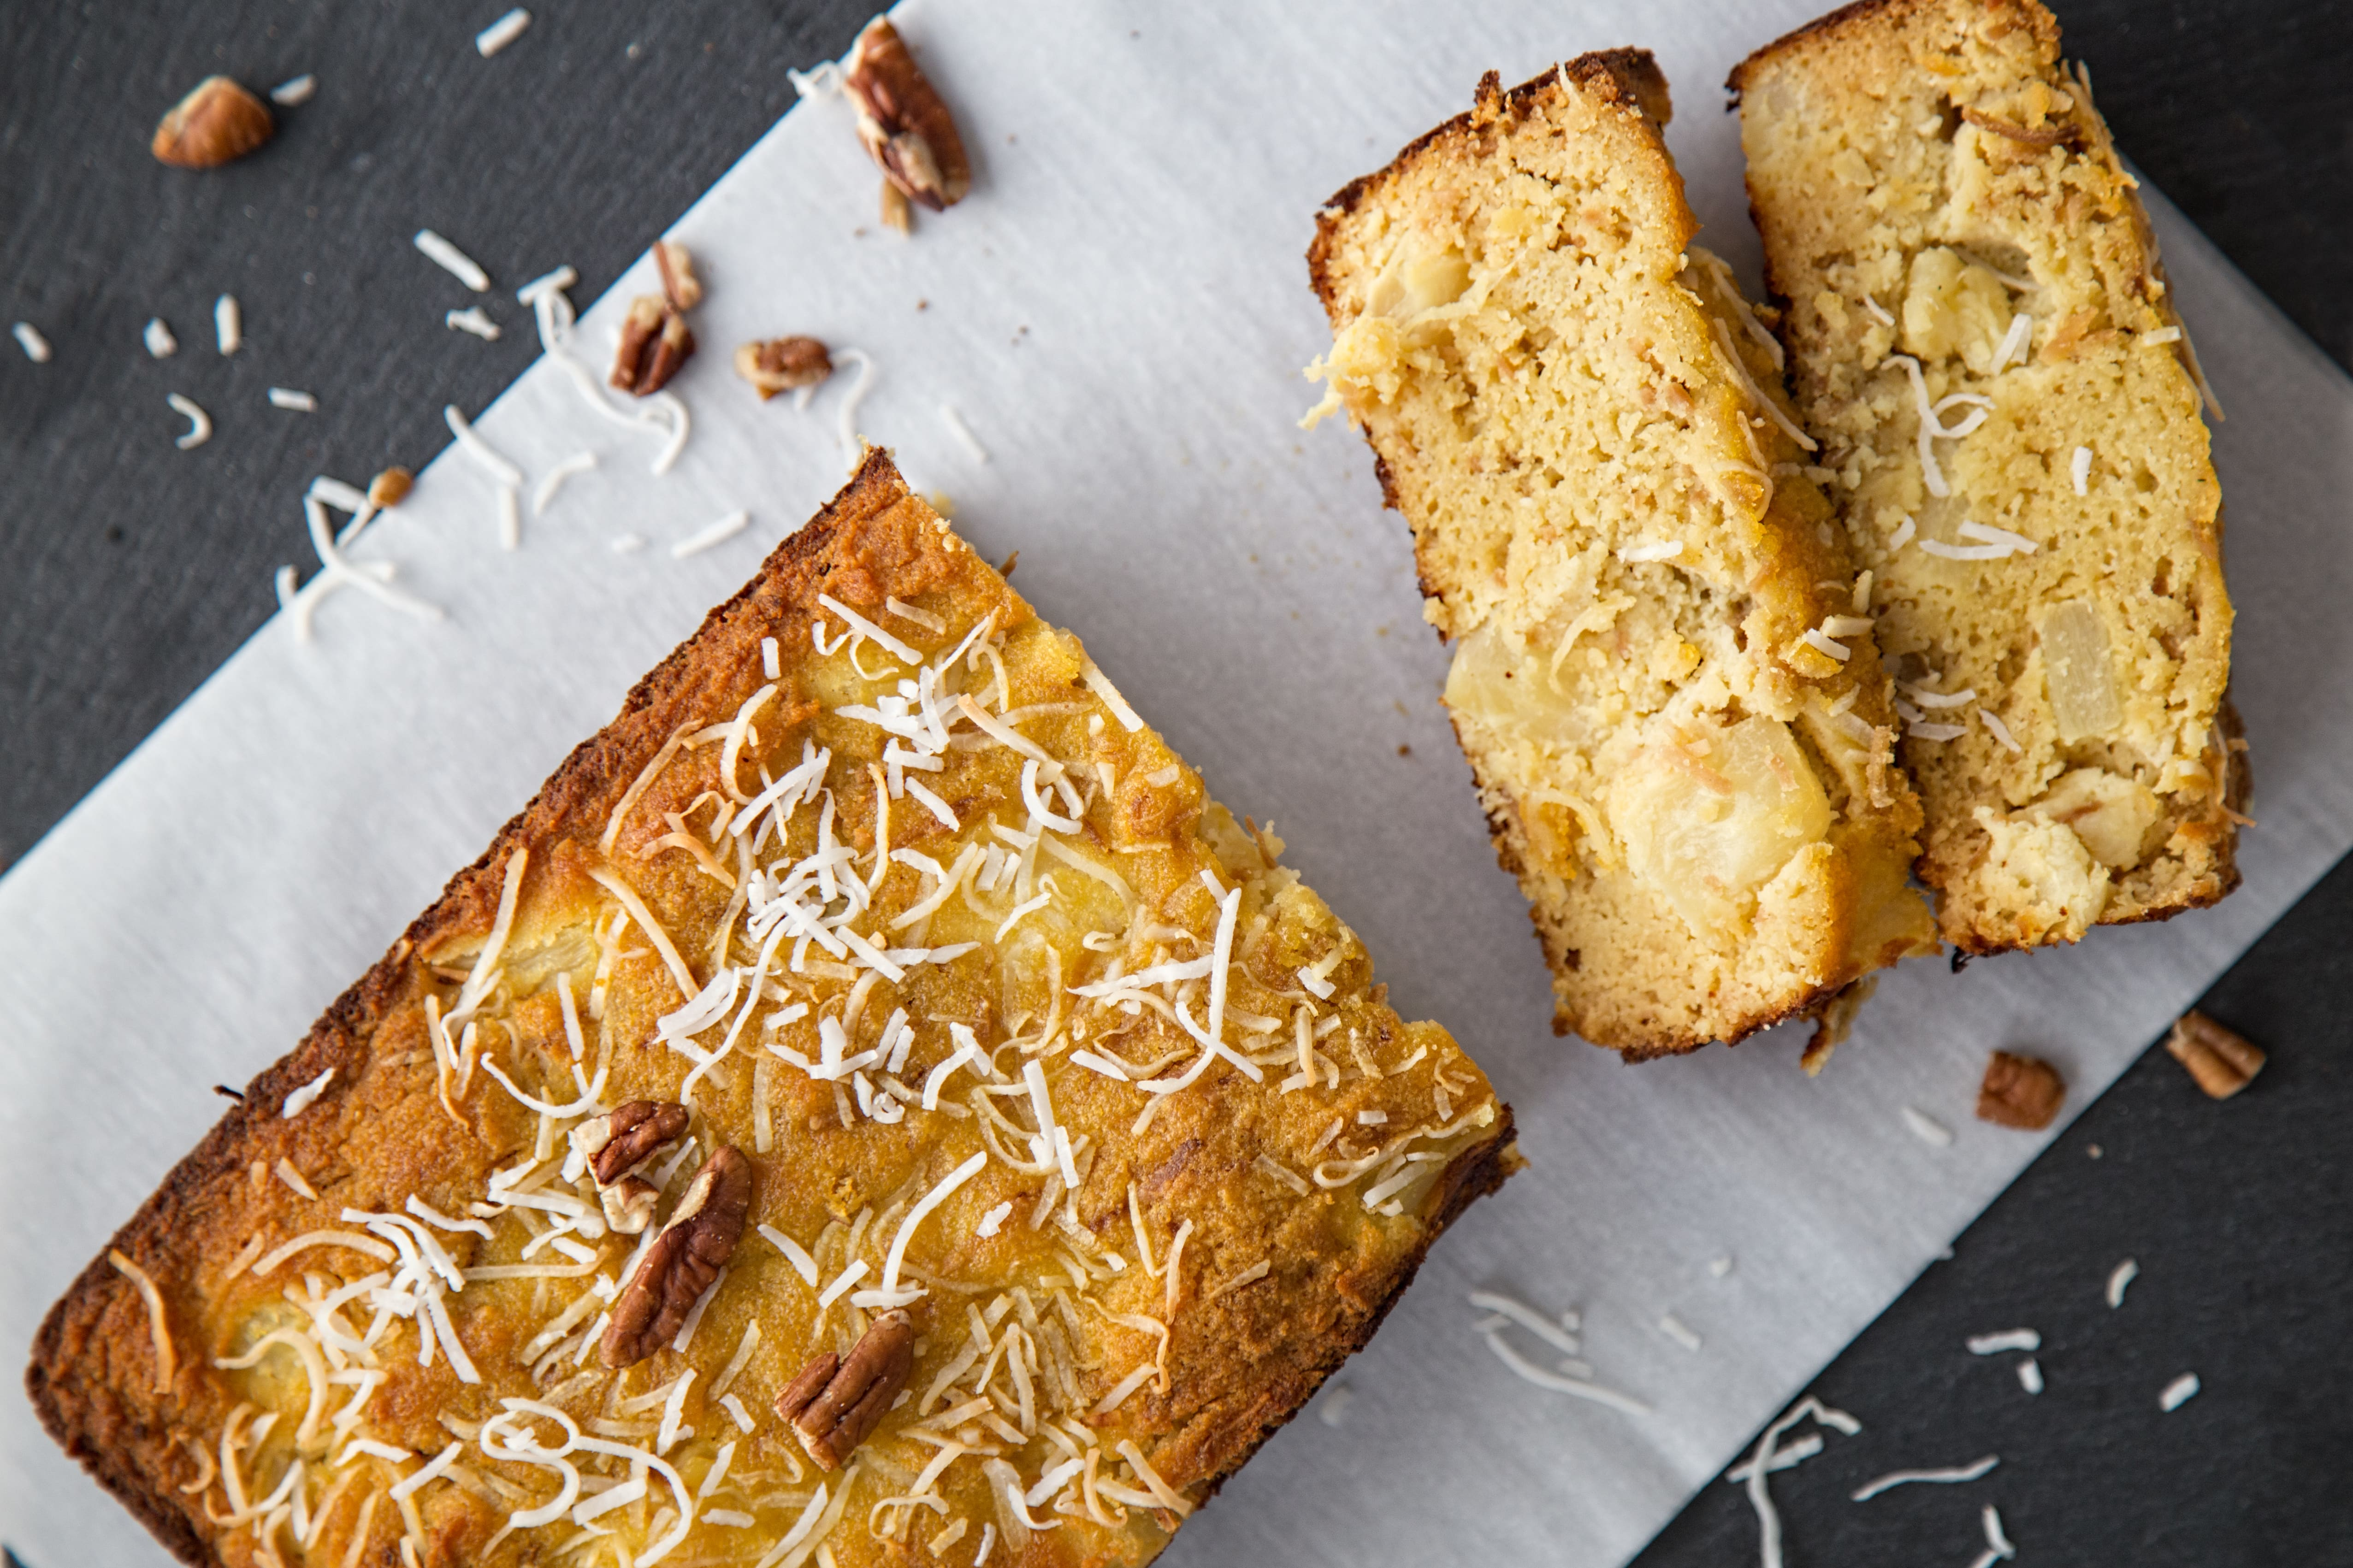 clean_pineapple_coconut_loaf